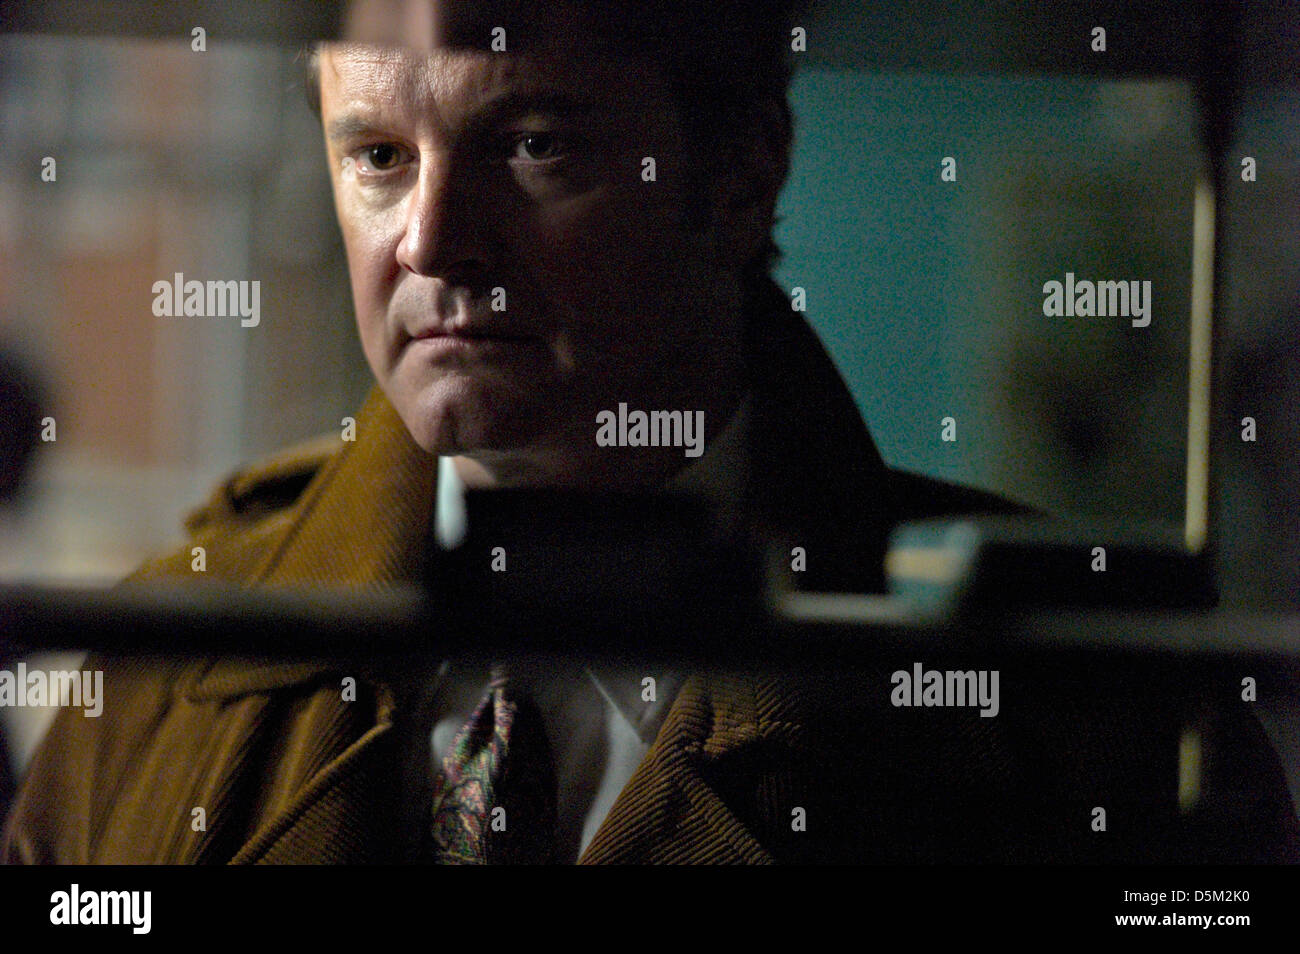 COLIN FIRTH TINKER TAILOR SOLDIER SPY (2011) - Stock Image